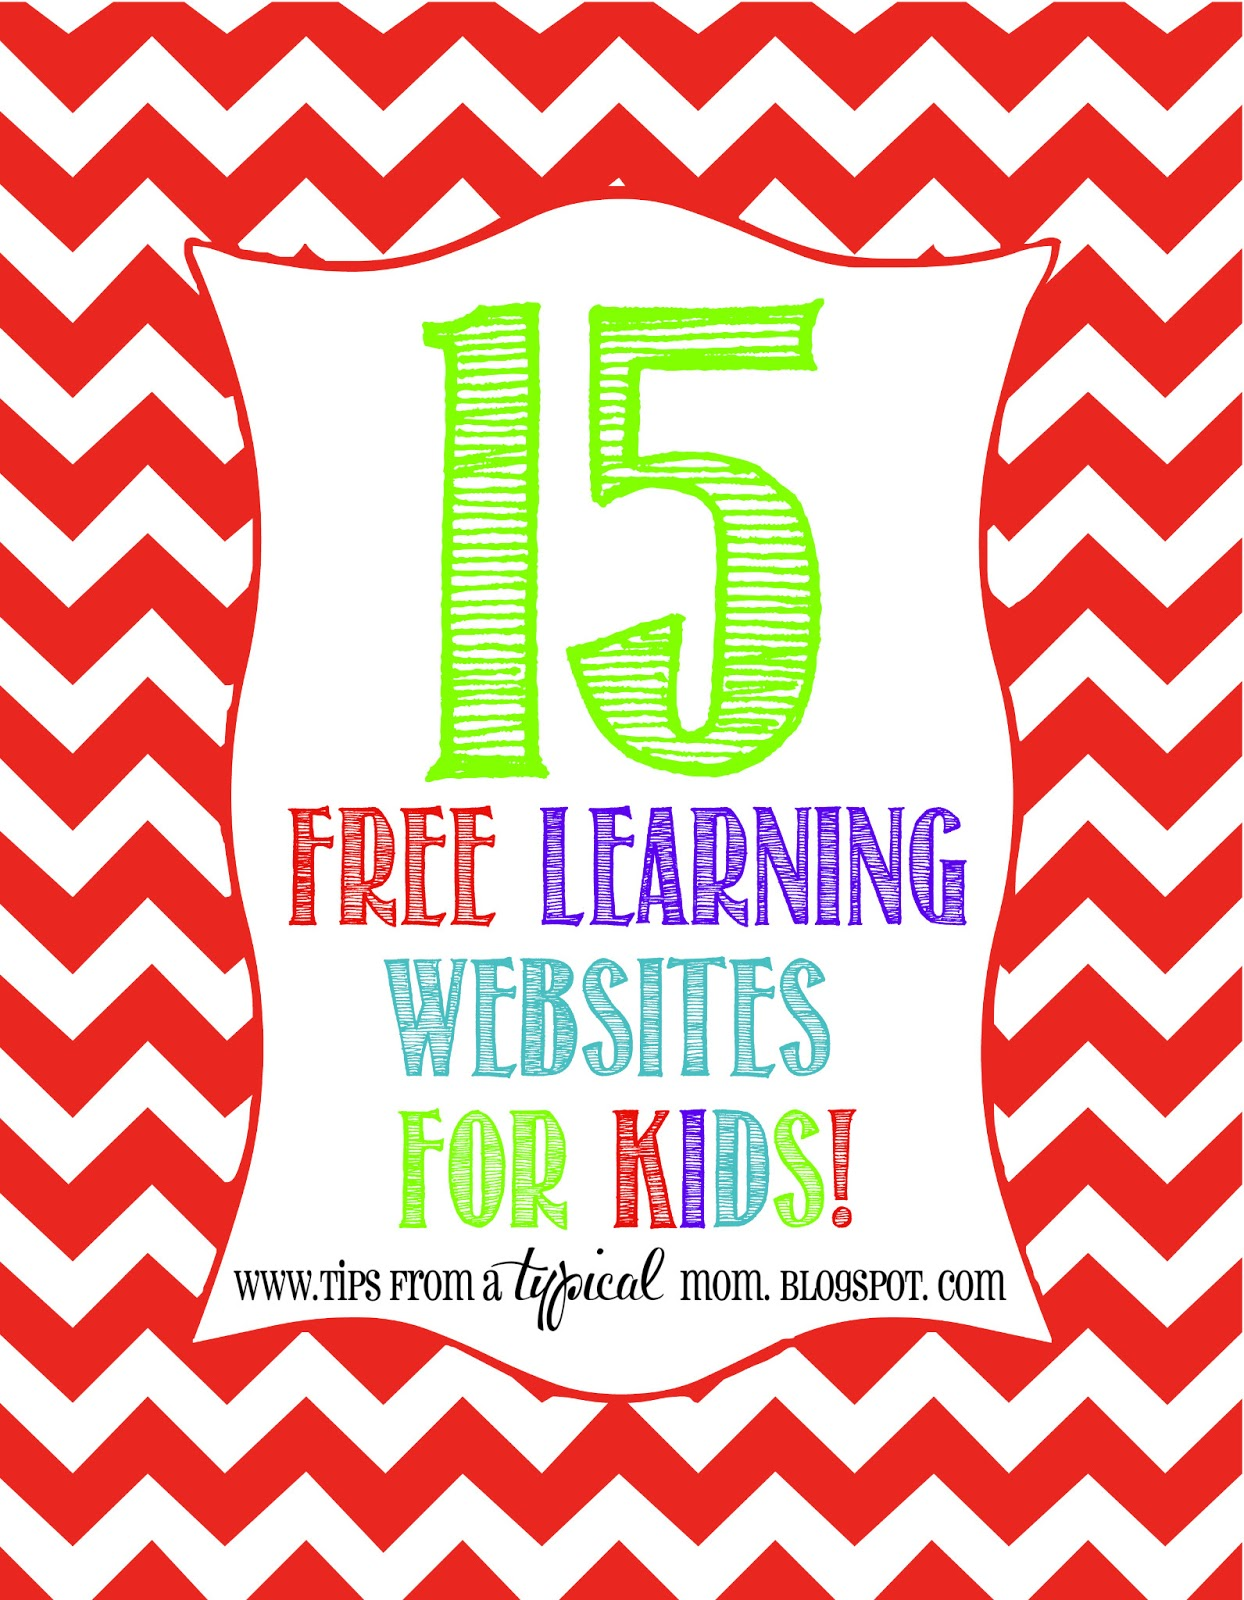 15 Free Learning Websites for Kids - Tips from a Typical Mom